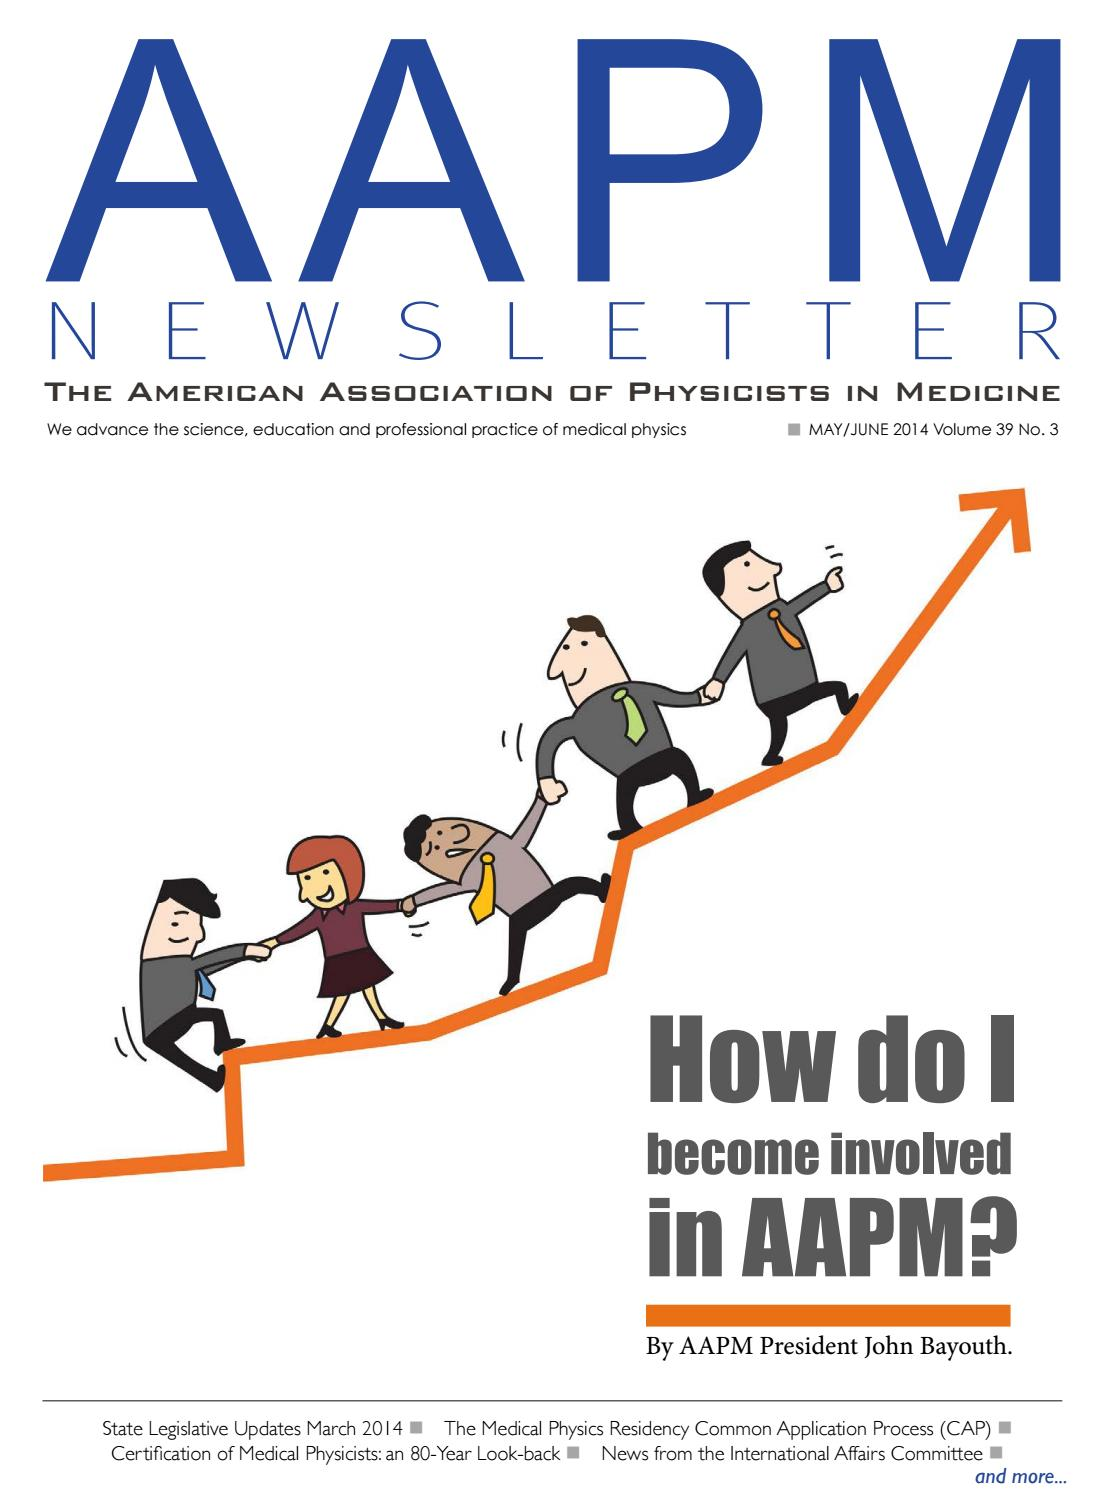 AAPM Newsletter May/June 2014 Vol  39 No  3 by aapmdocs - issuu